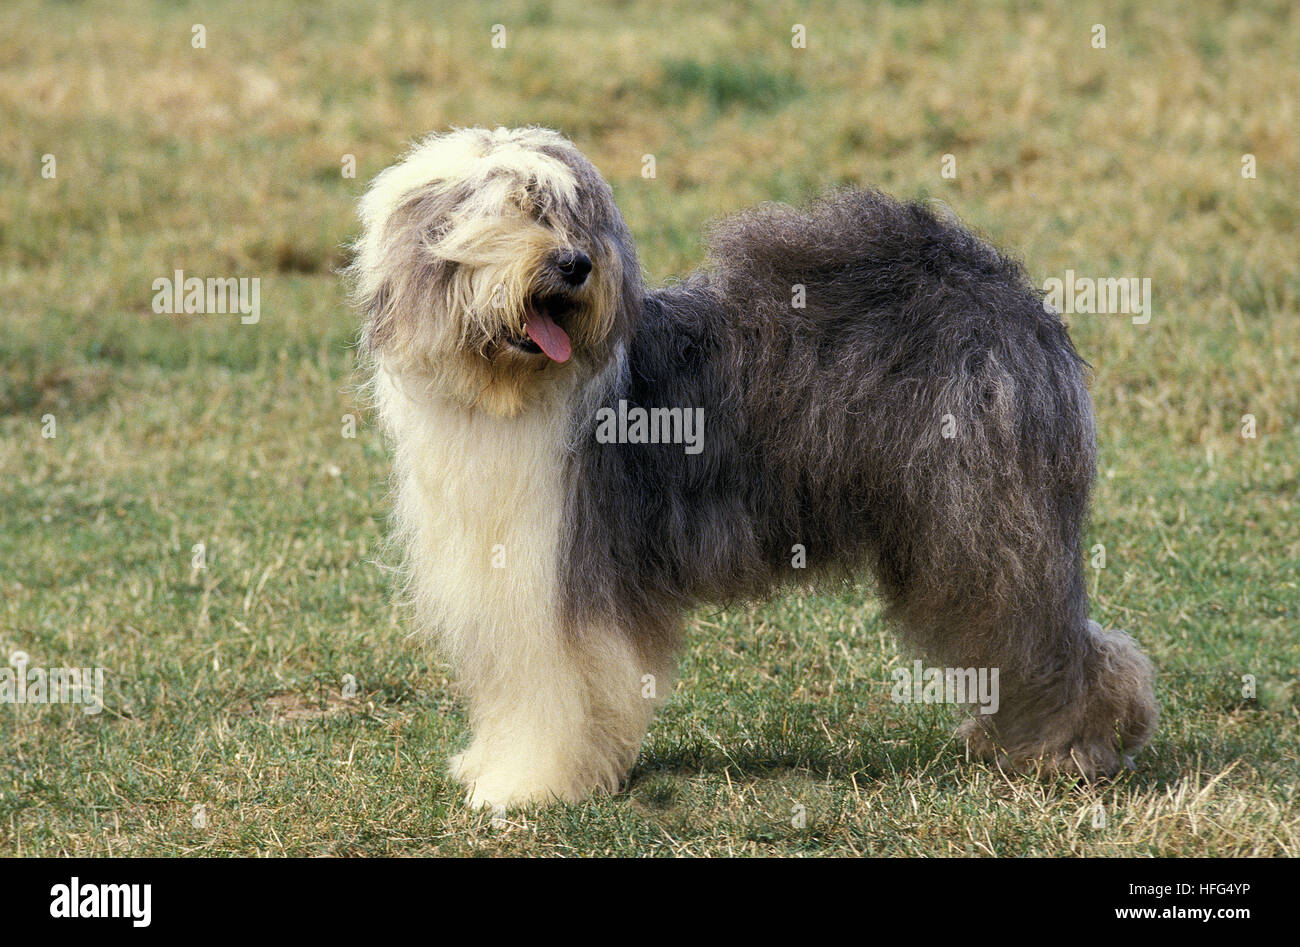 Bobtail Dog or Old English Sheepdog, Adult standing on Grass